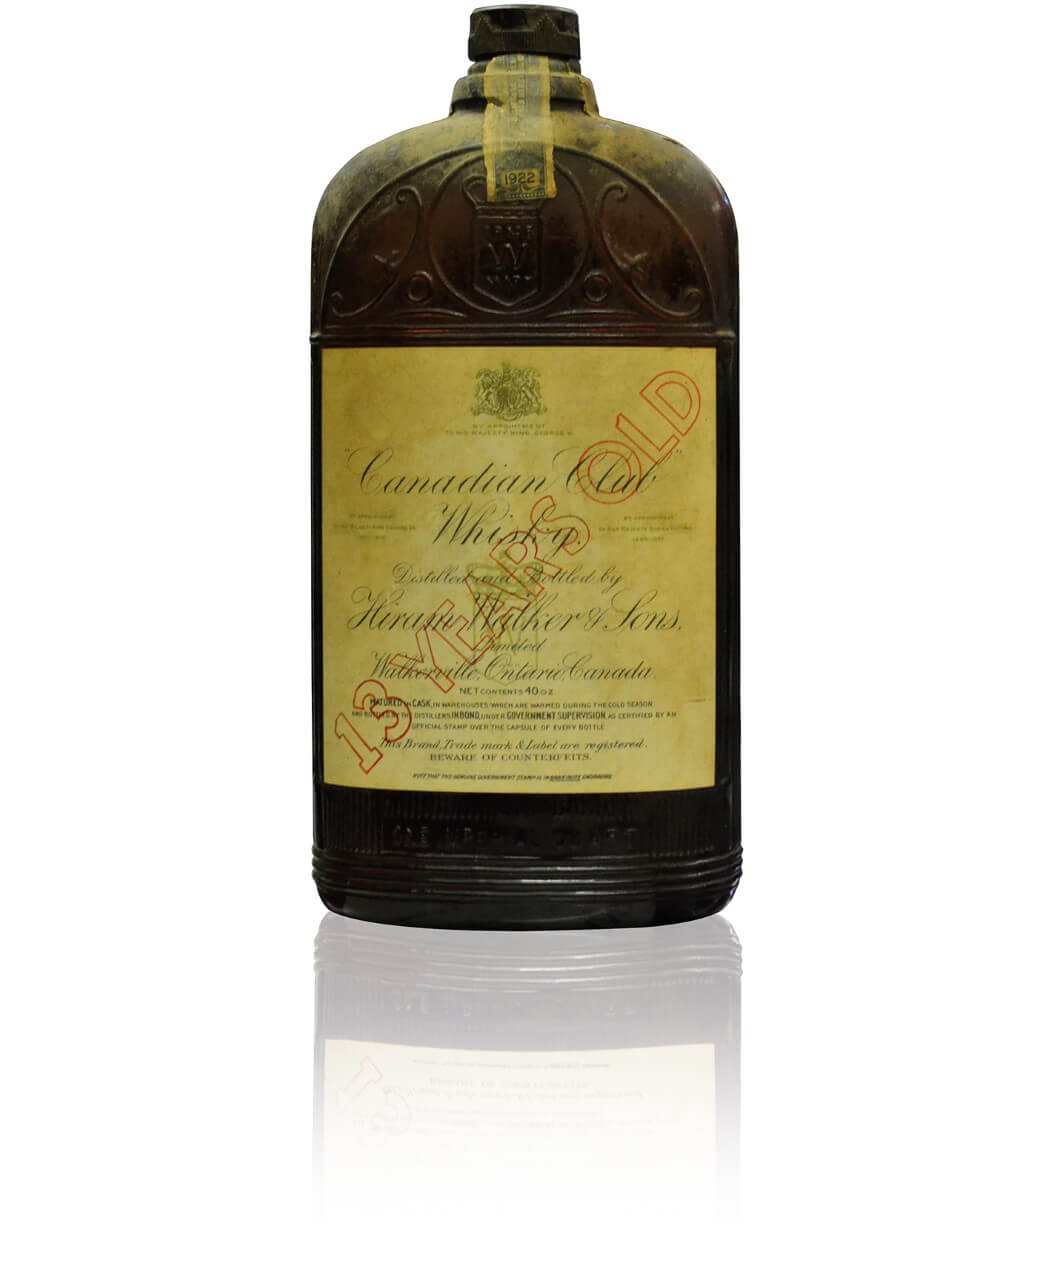 Canadian Club from 1922